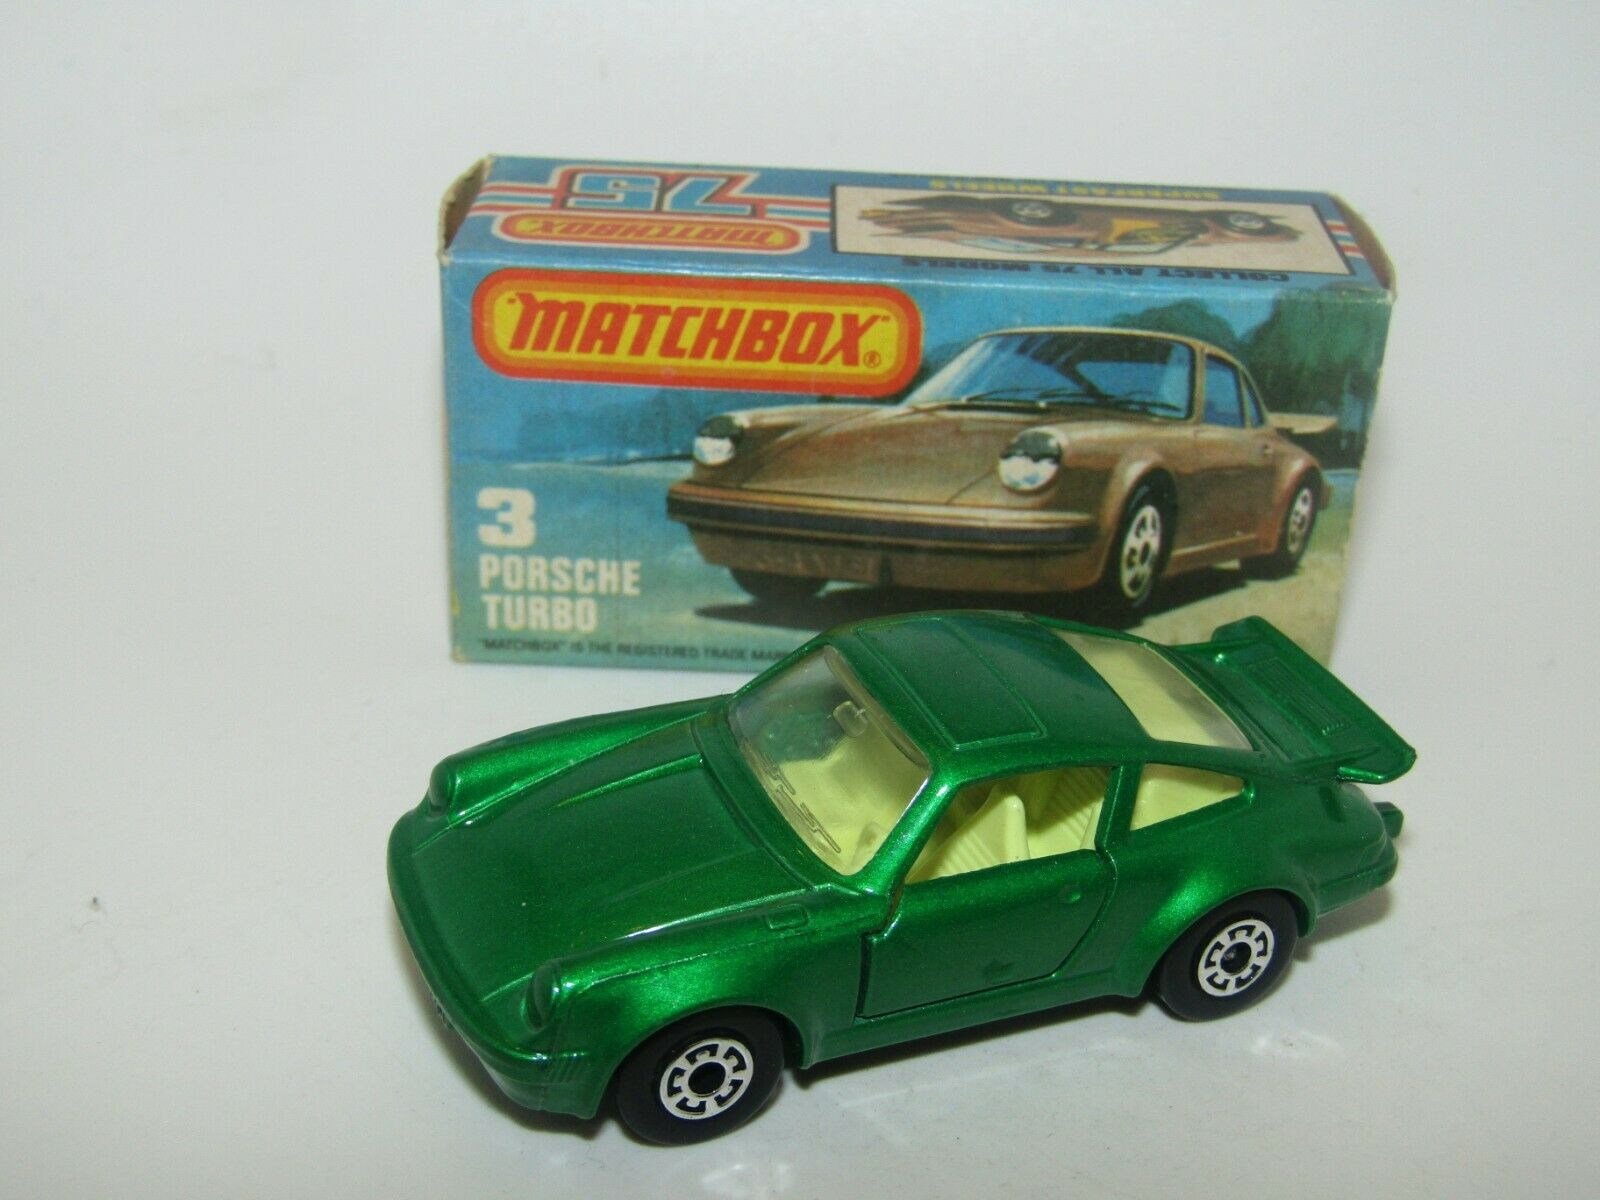 MatchBox Superfast No 3 Porsche Turbo Grün LEMON INTERIOR, grau Base MIB Rare